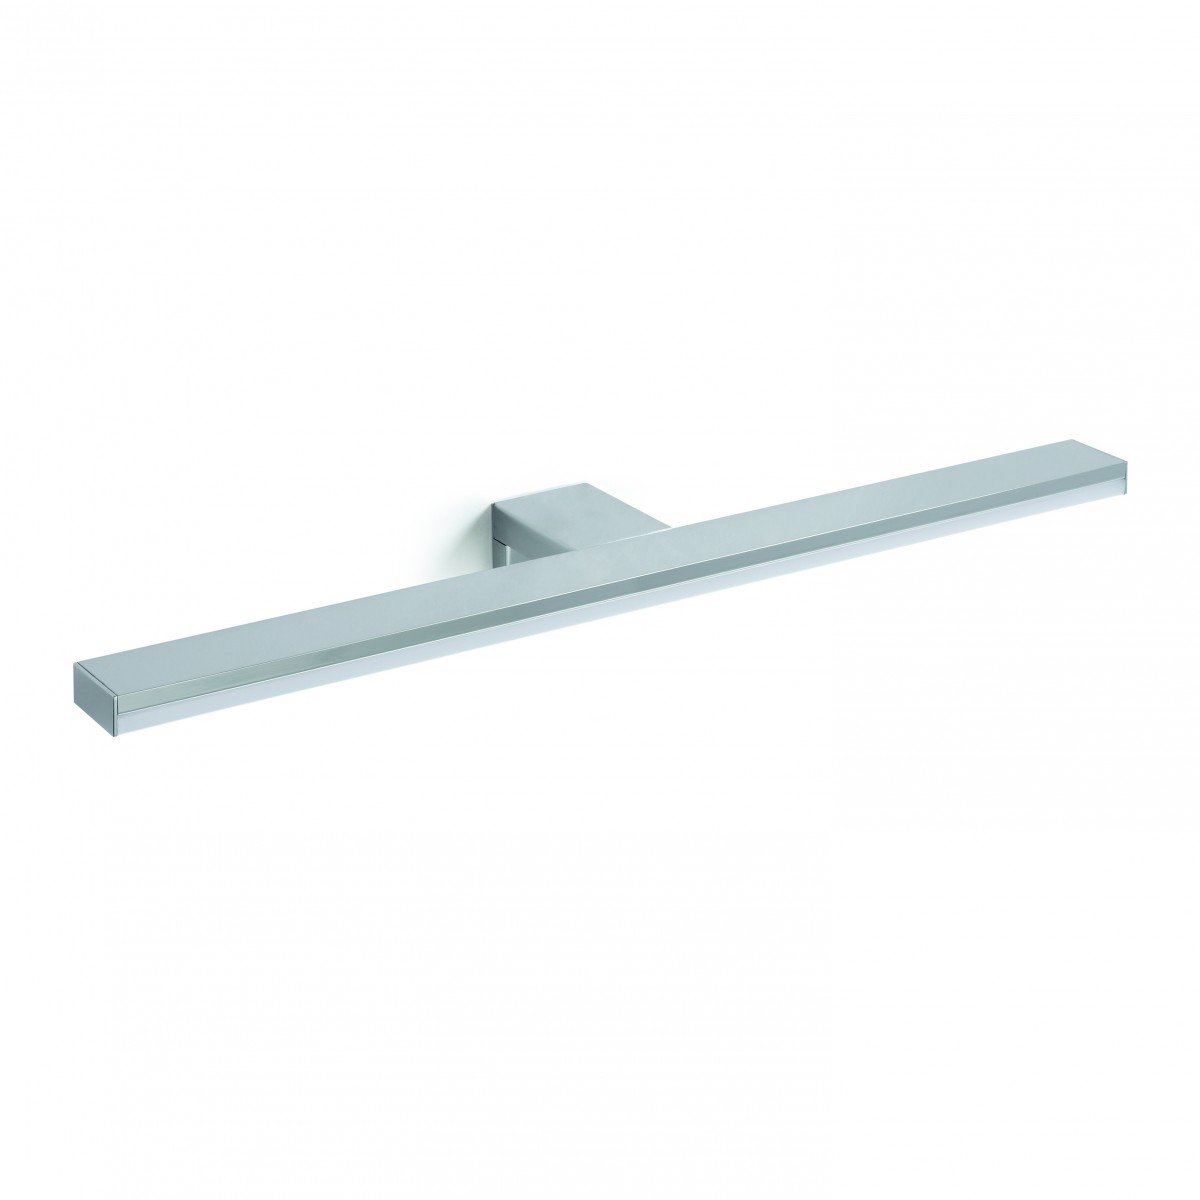 Aplique Baño Exo Lighting Tek Aplique De Pared Baño Cromo Led 7w Apliques De Pared LÁmparas Exo Lighting